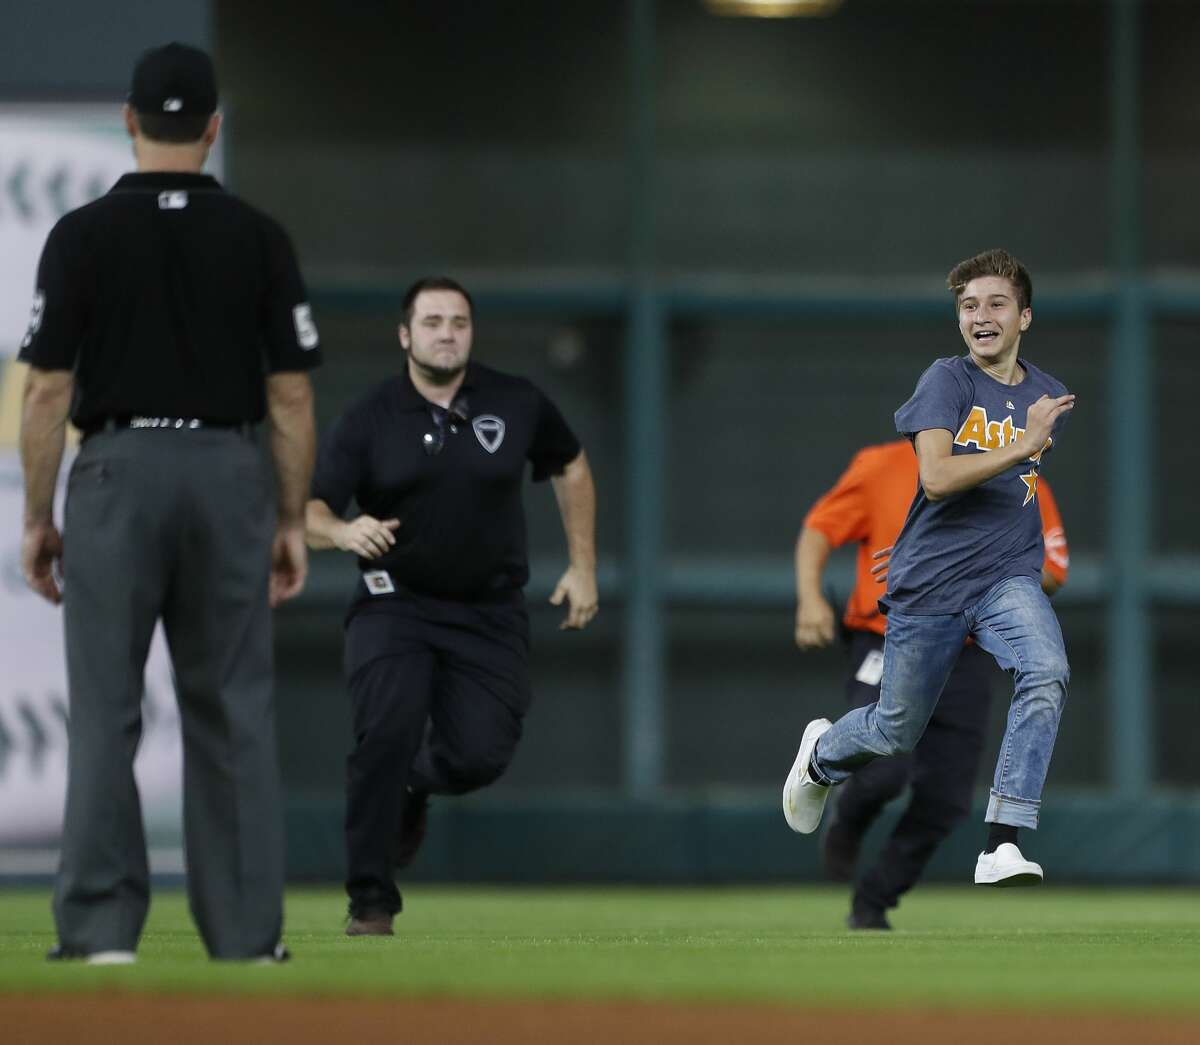 A kid runs around the field as security and police gave chase during the seventh inning of an MLB baseball game at Minute Maid Park, Sunday, Sept. 24, 2017, in Houston. ( Karen Warren / Houston Chronicle )